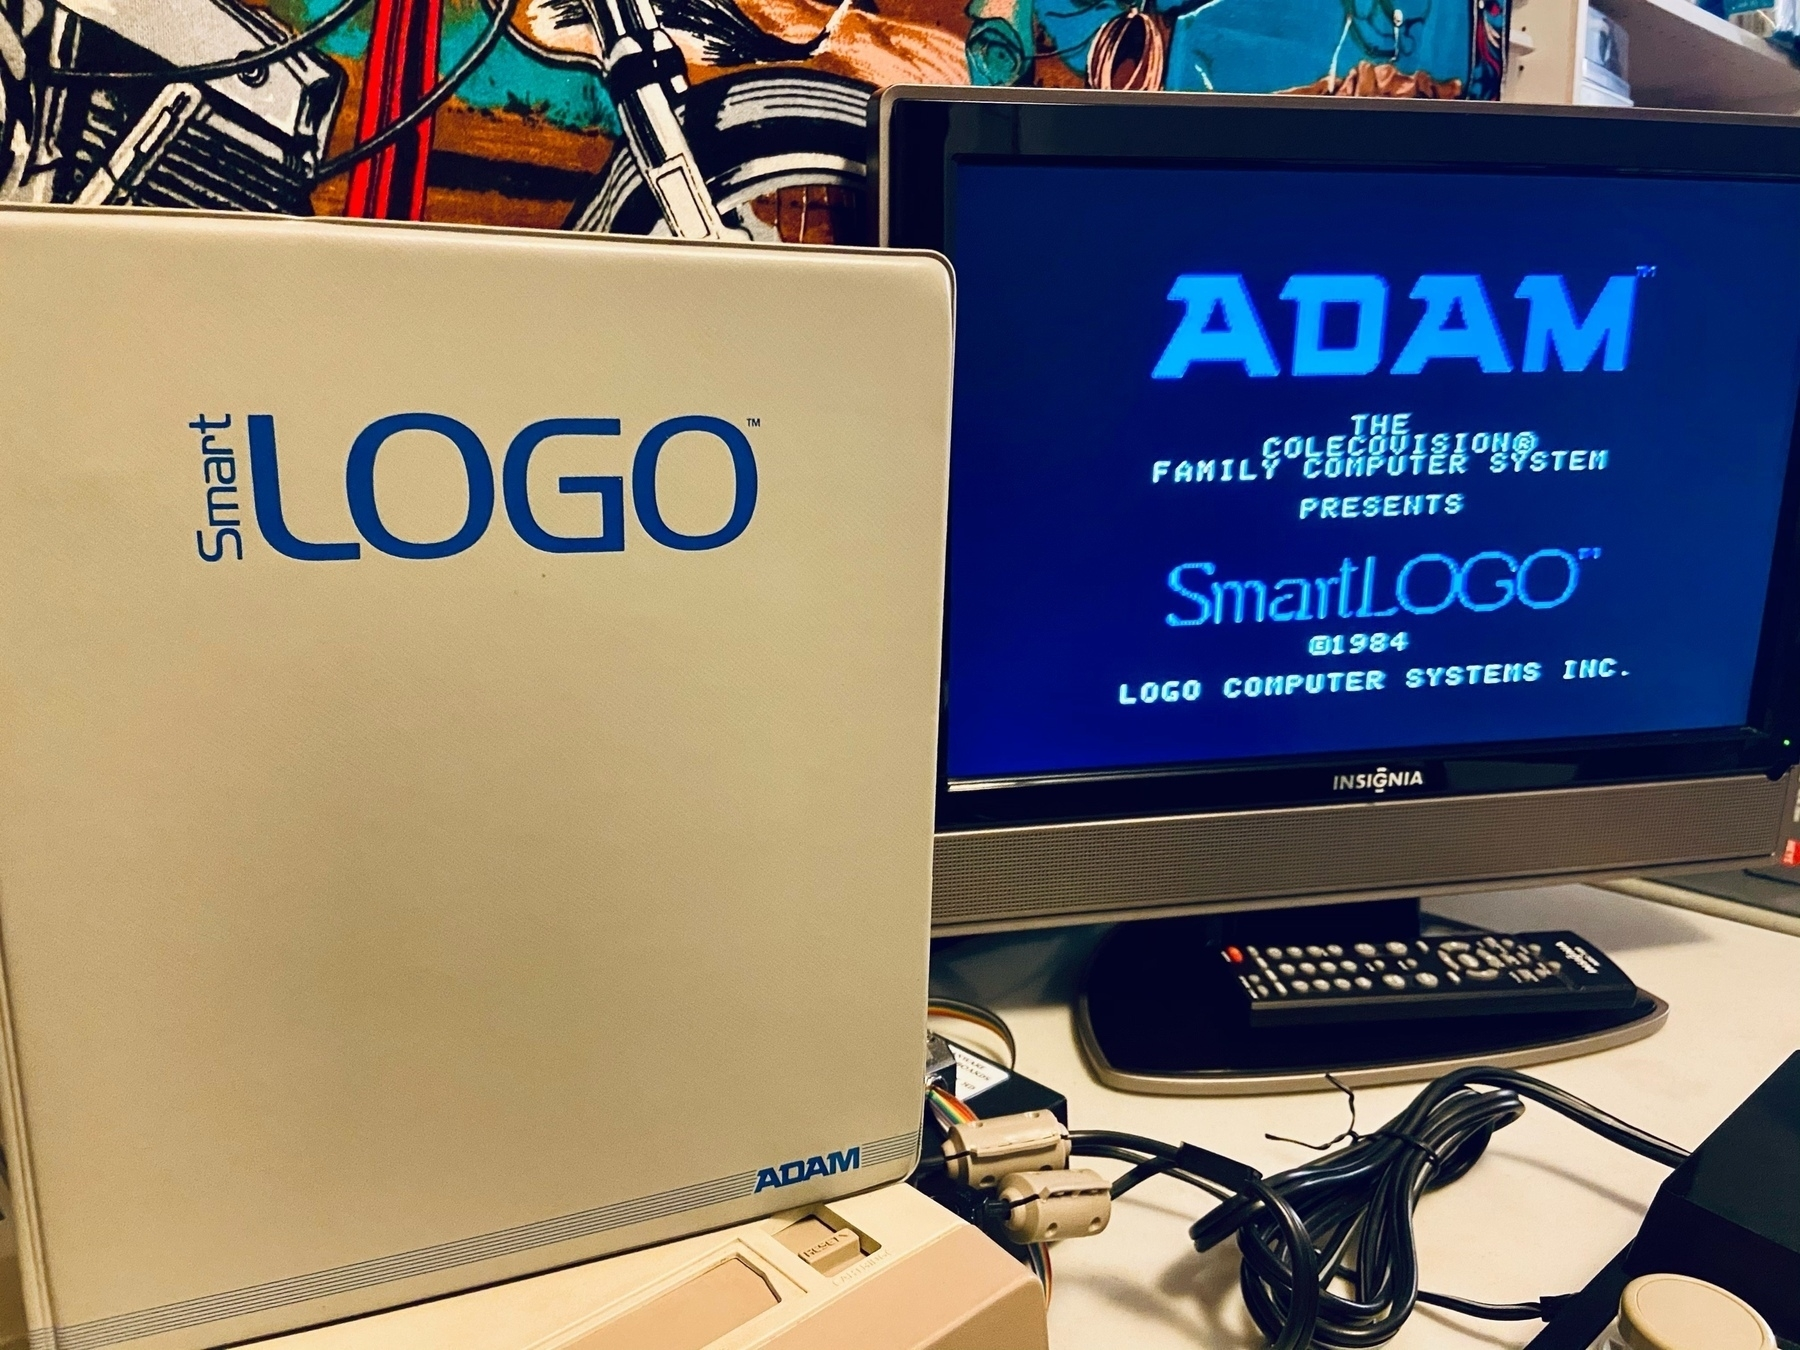 SmartLOGO for Coleco ADAM